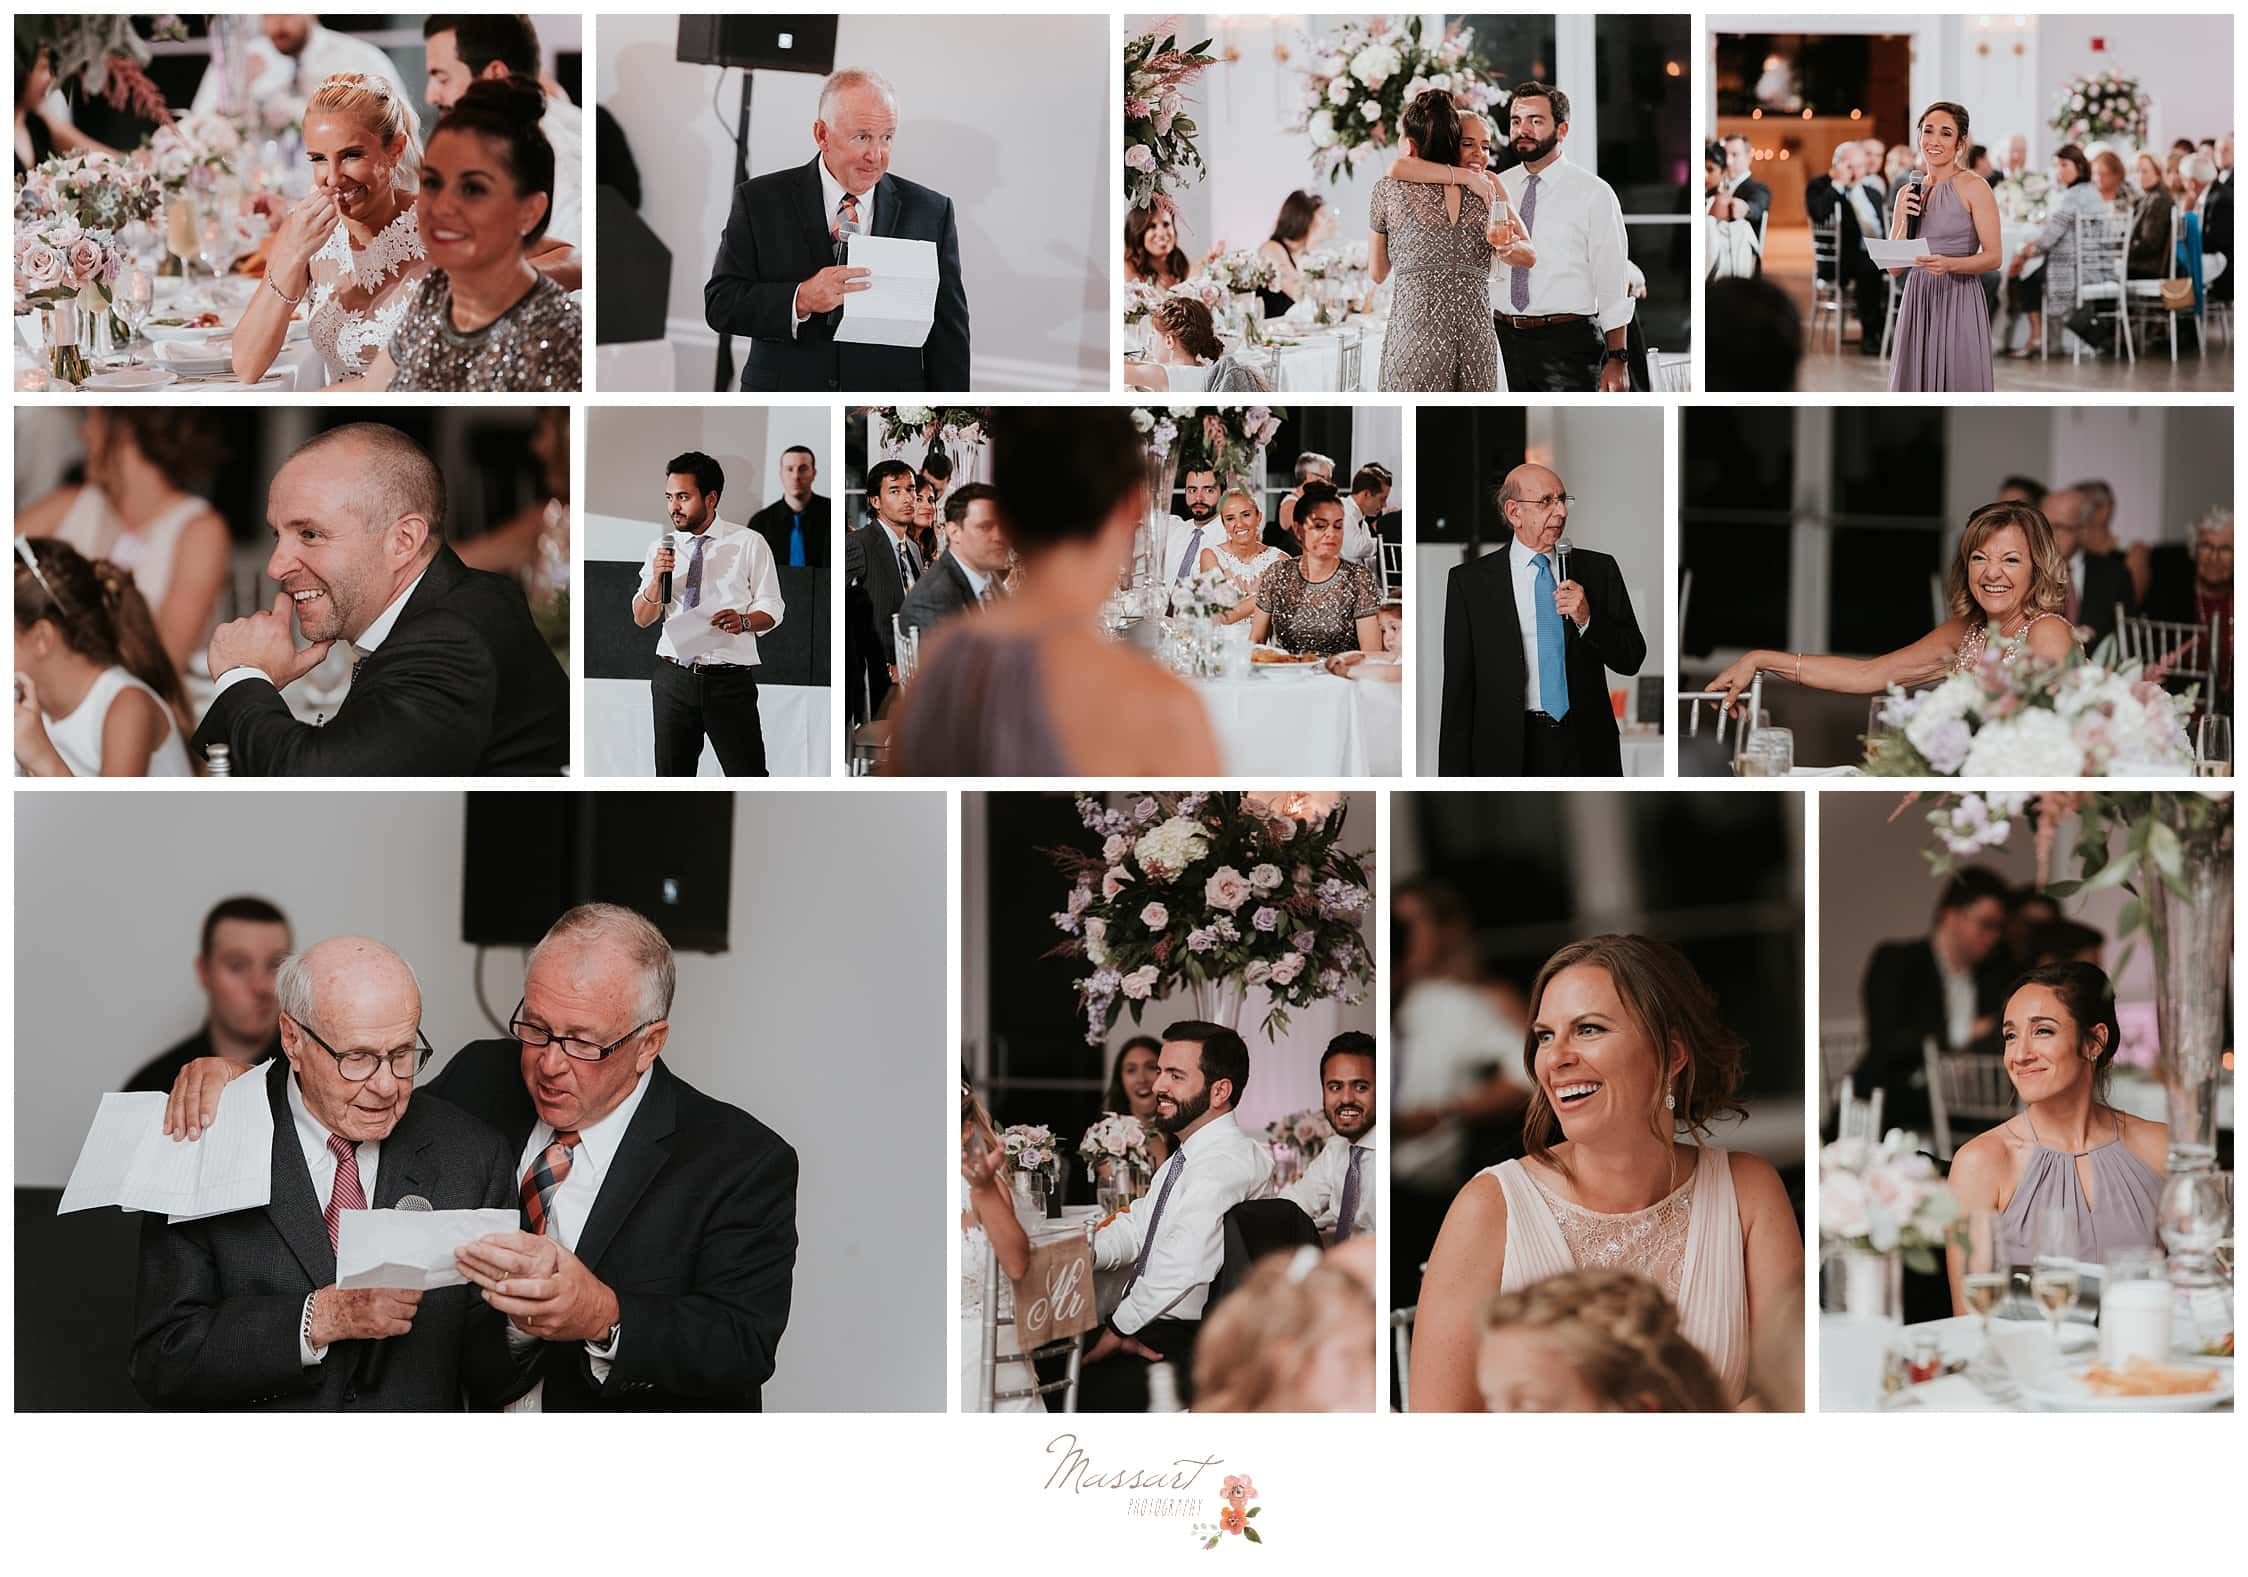 Portraits of family members, the best man and the maid of honor giving speeches at the wedding reception photographed by Massart Photography Rhode Island